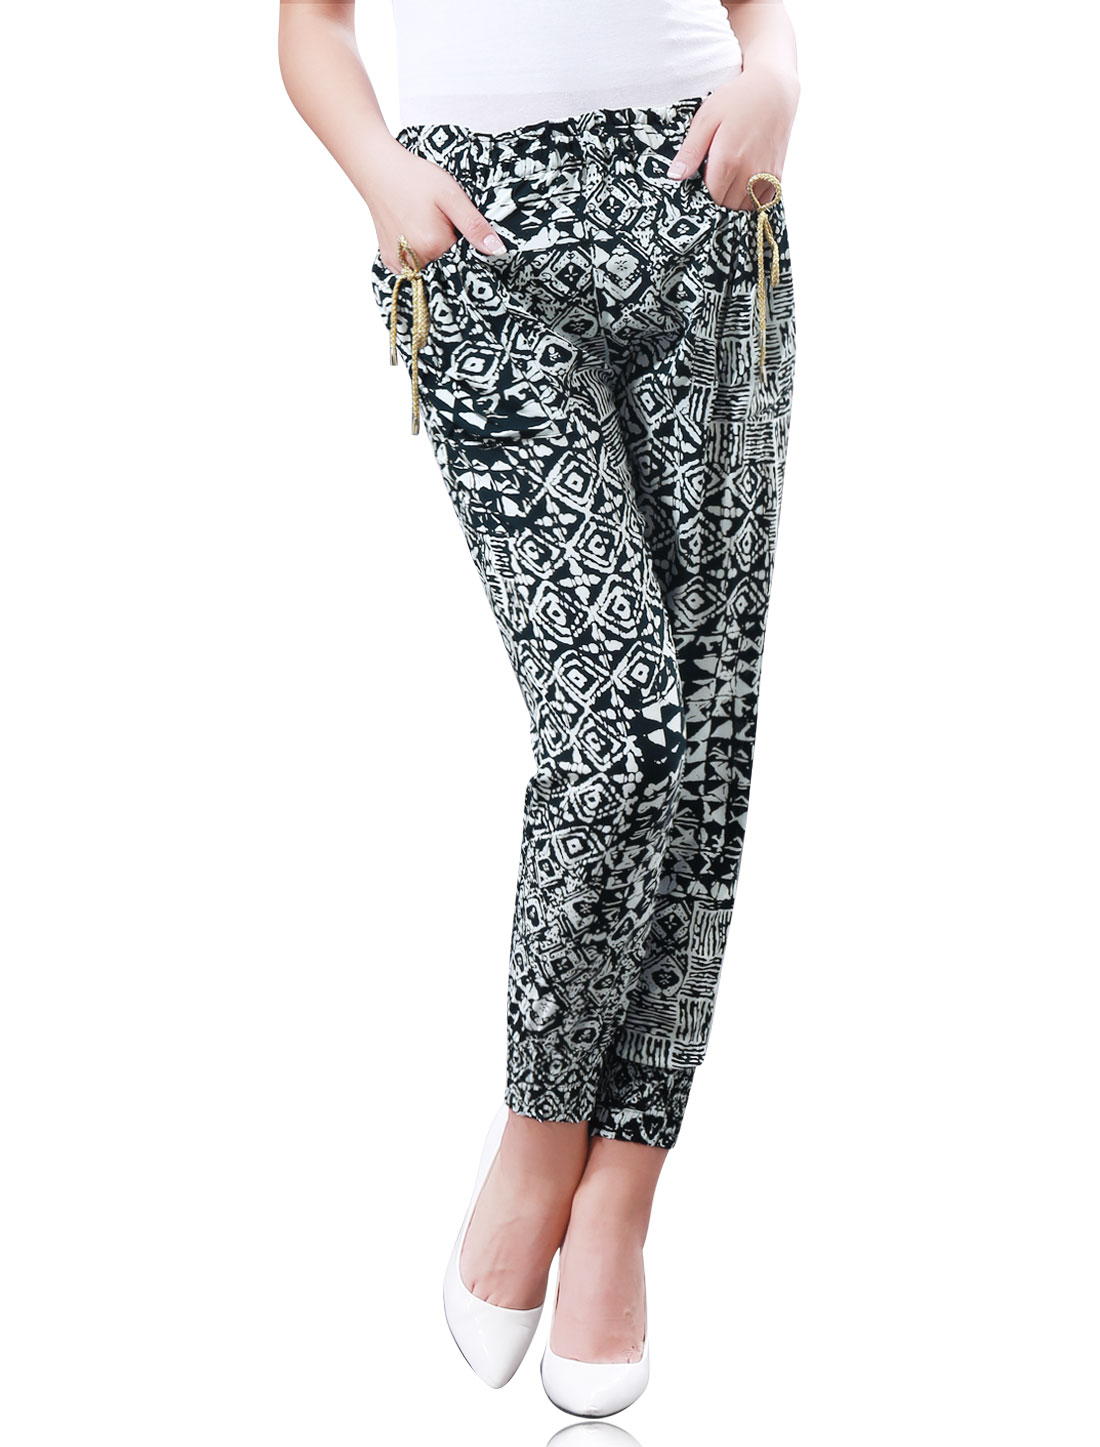 Women Stretch Waist All Over Geometric Novelty Print Jogger Pants Navy Blue White S